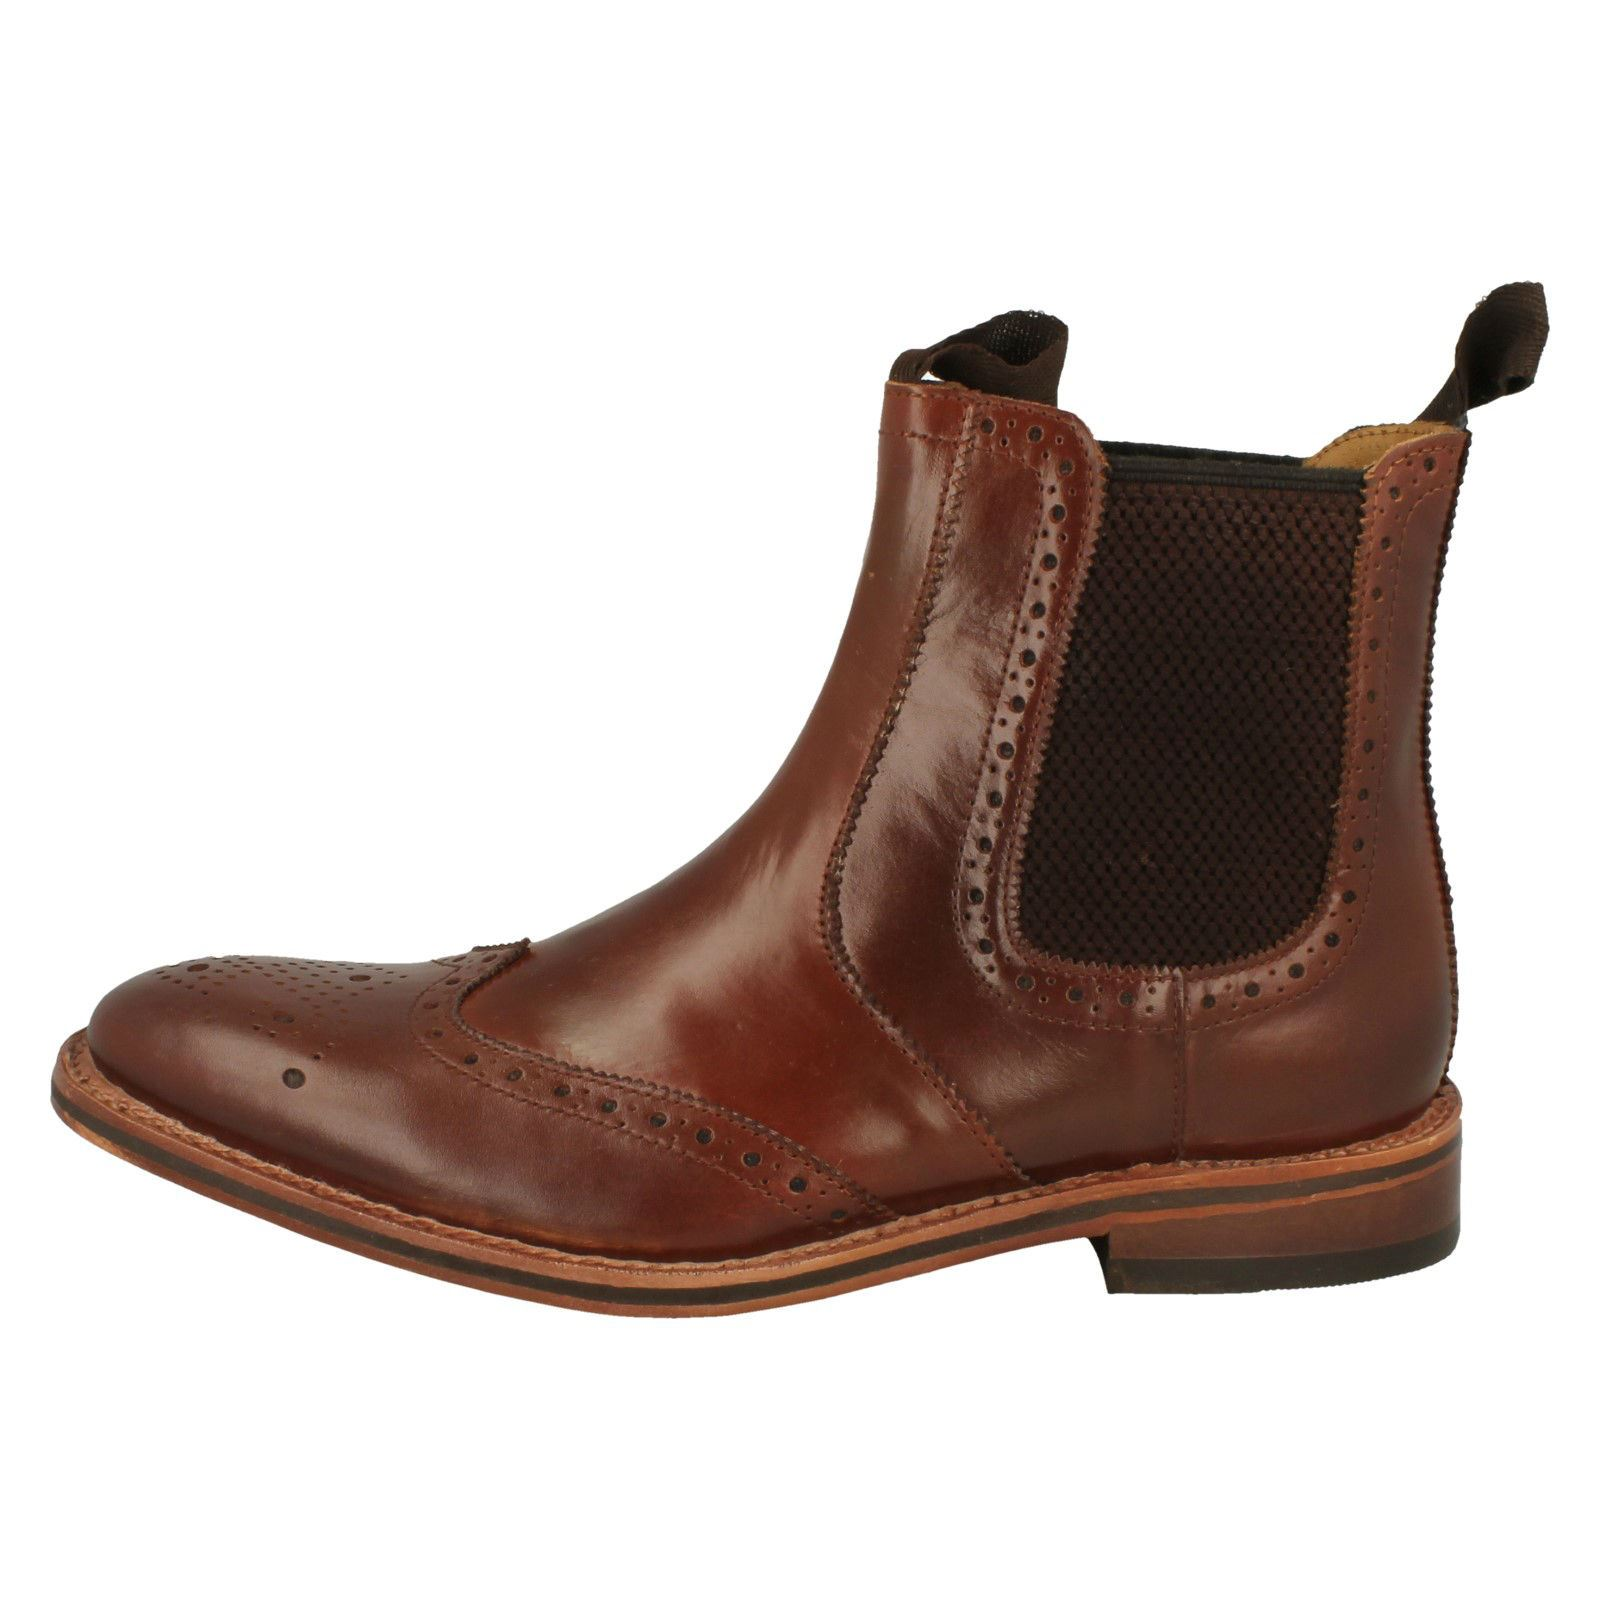 Mens-Catesby-Ankle-Boots-MCATESCW158T thumbnail 17